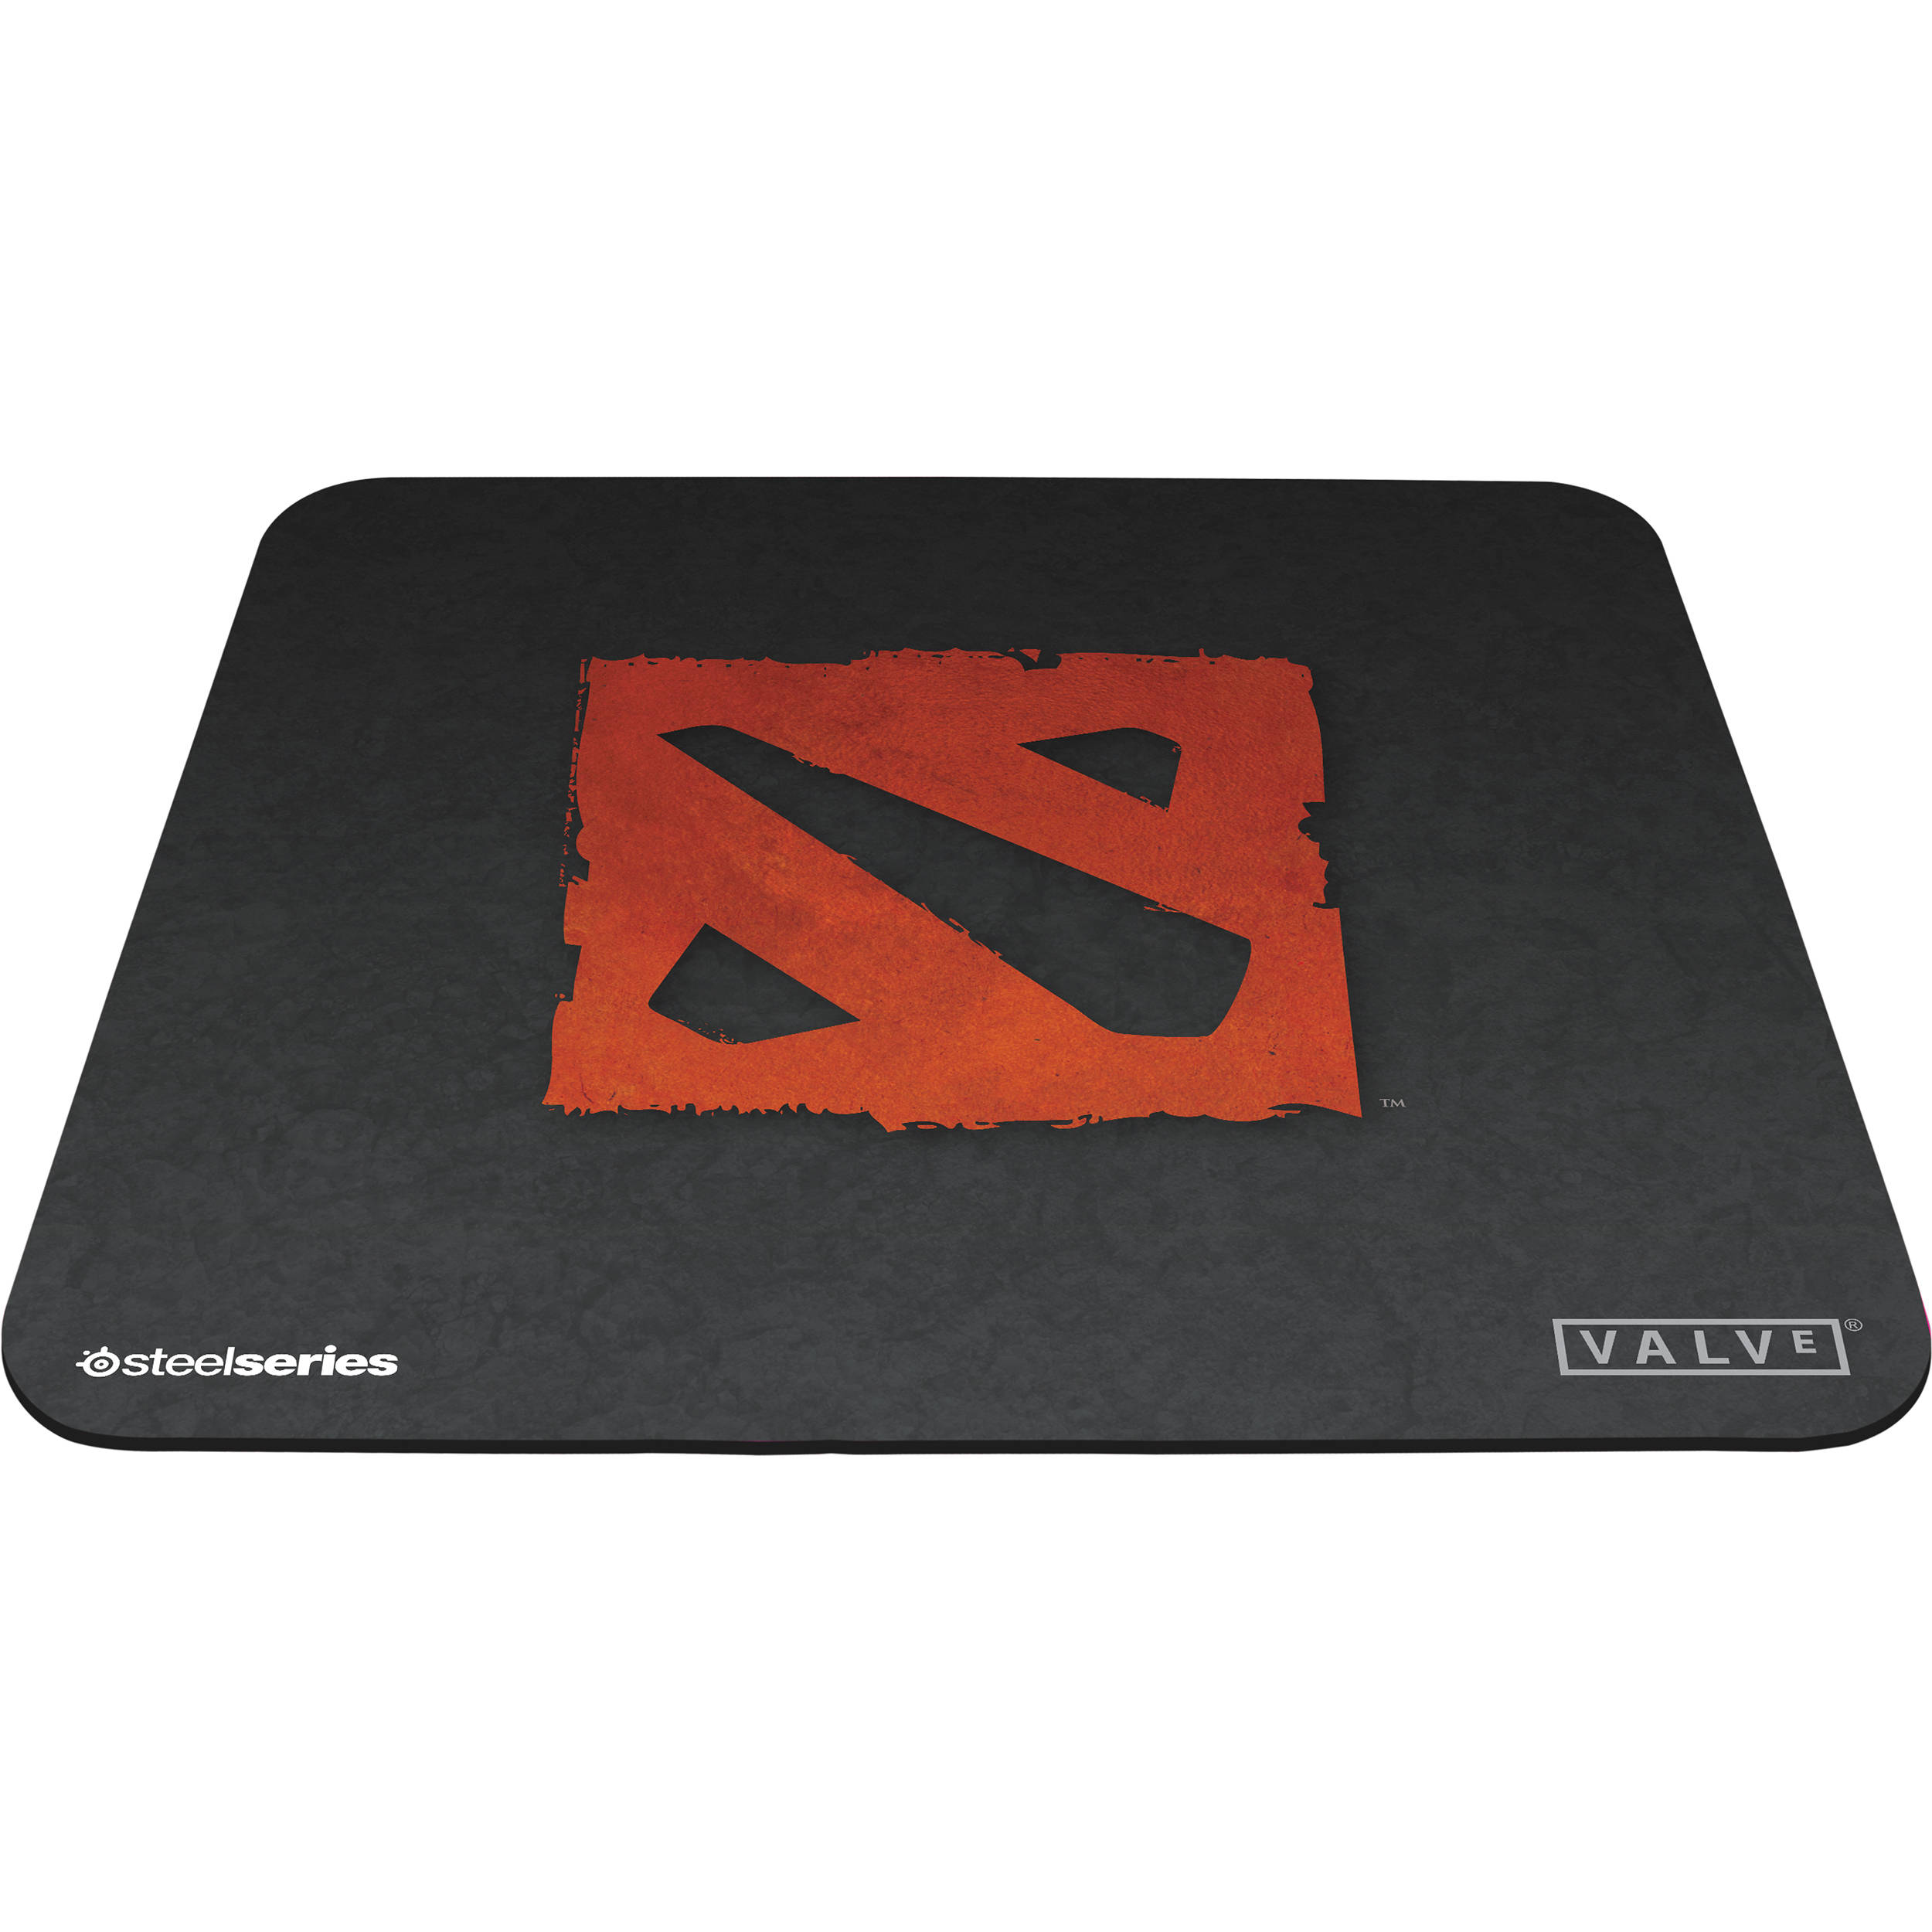 Steelseries Qck Gaming Mouse Pad